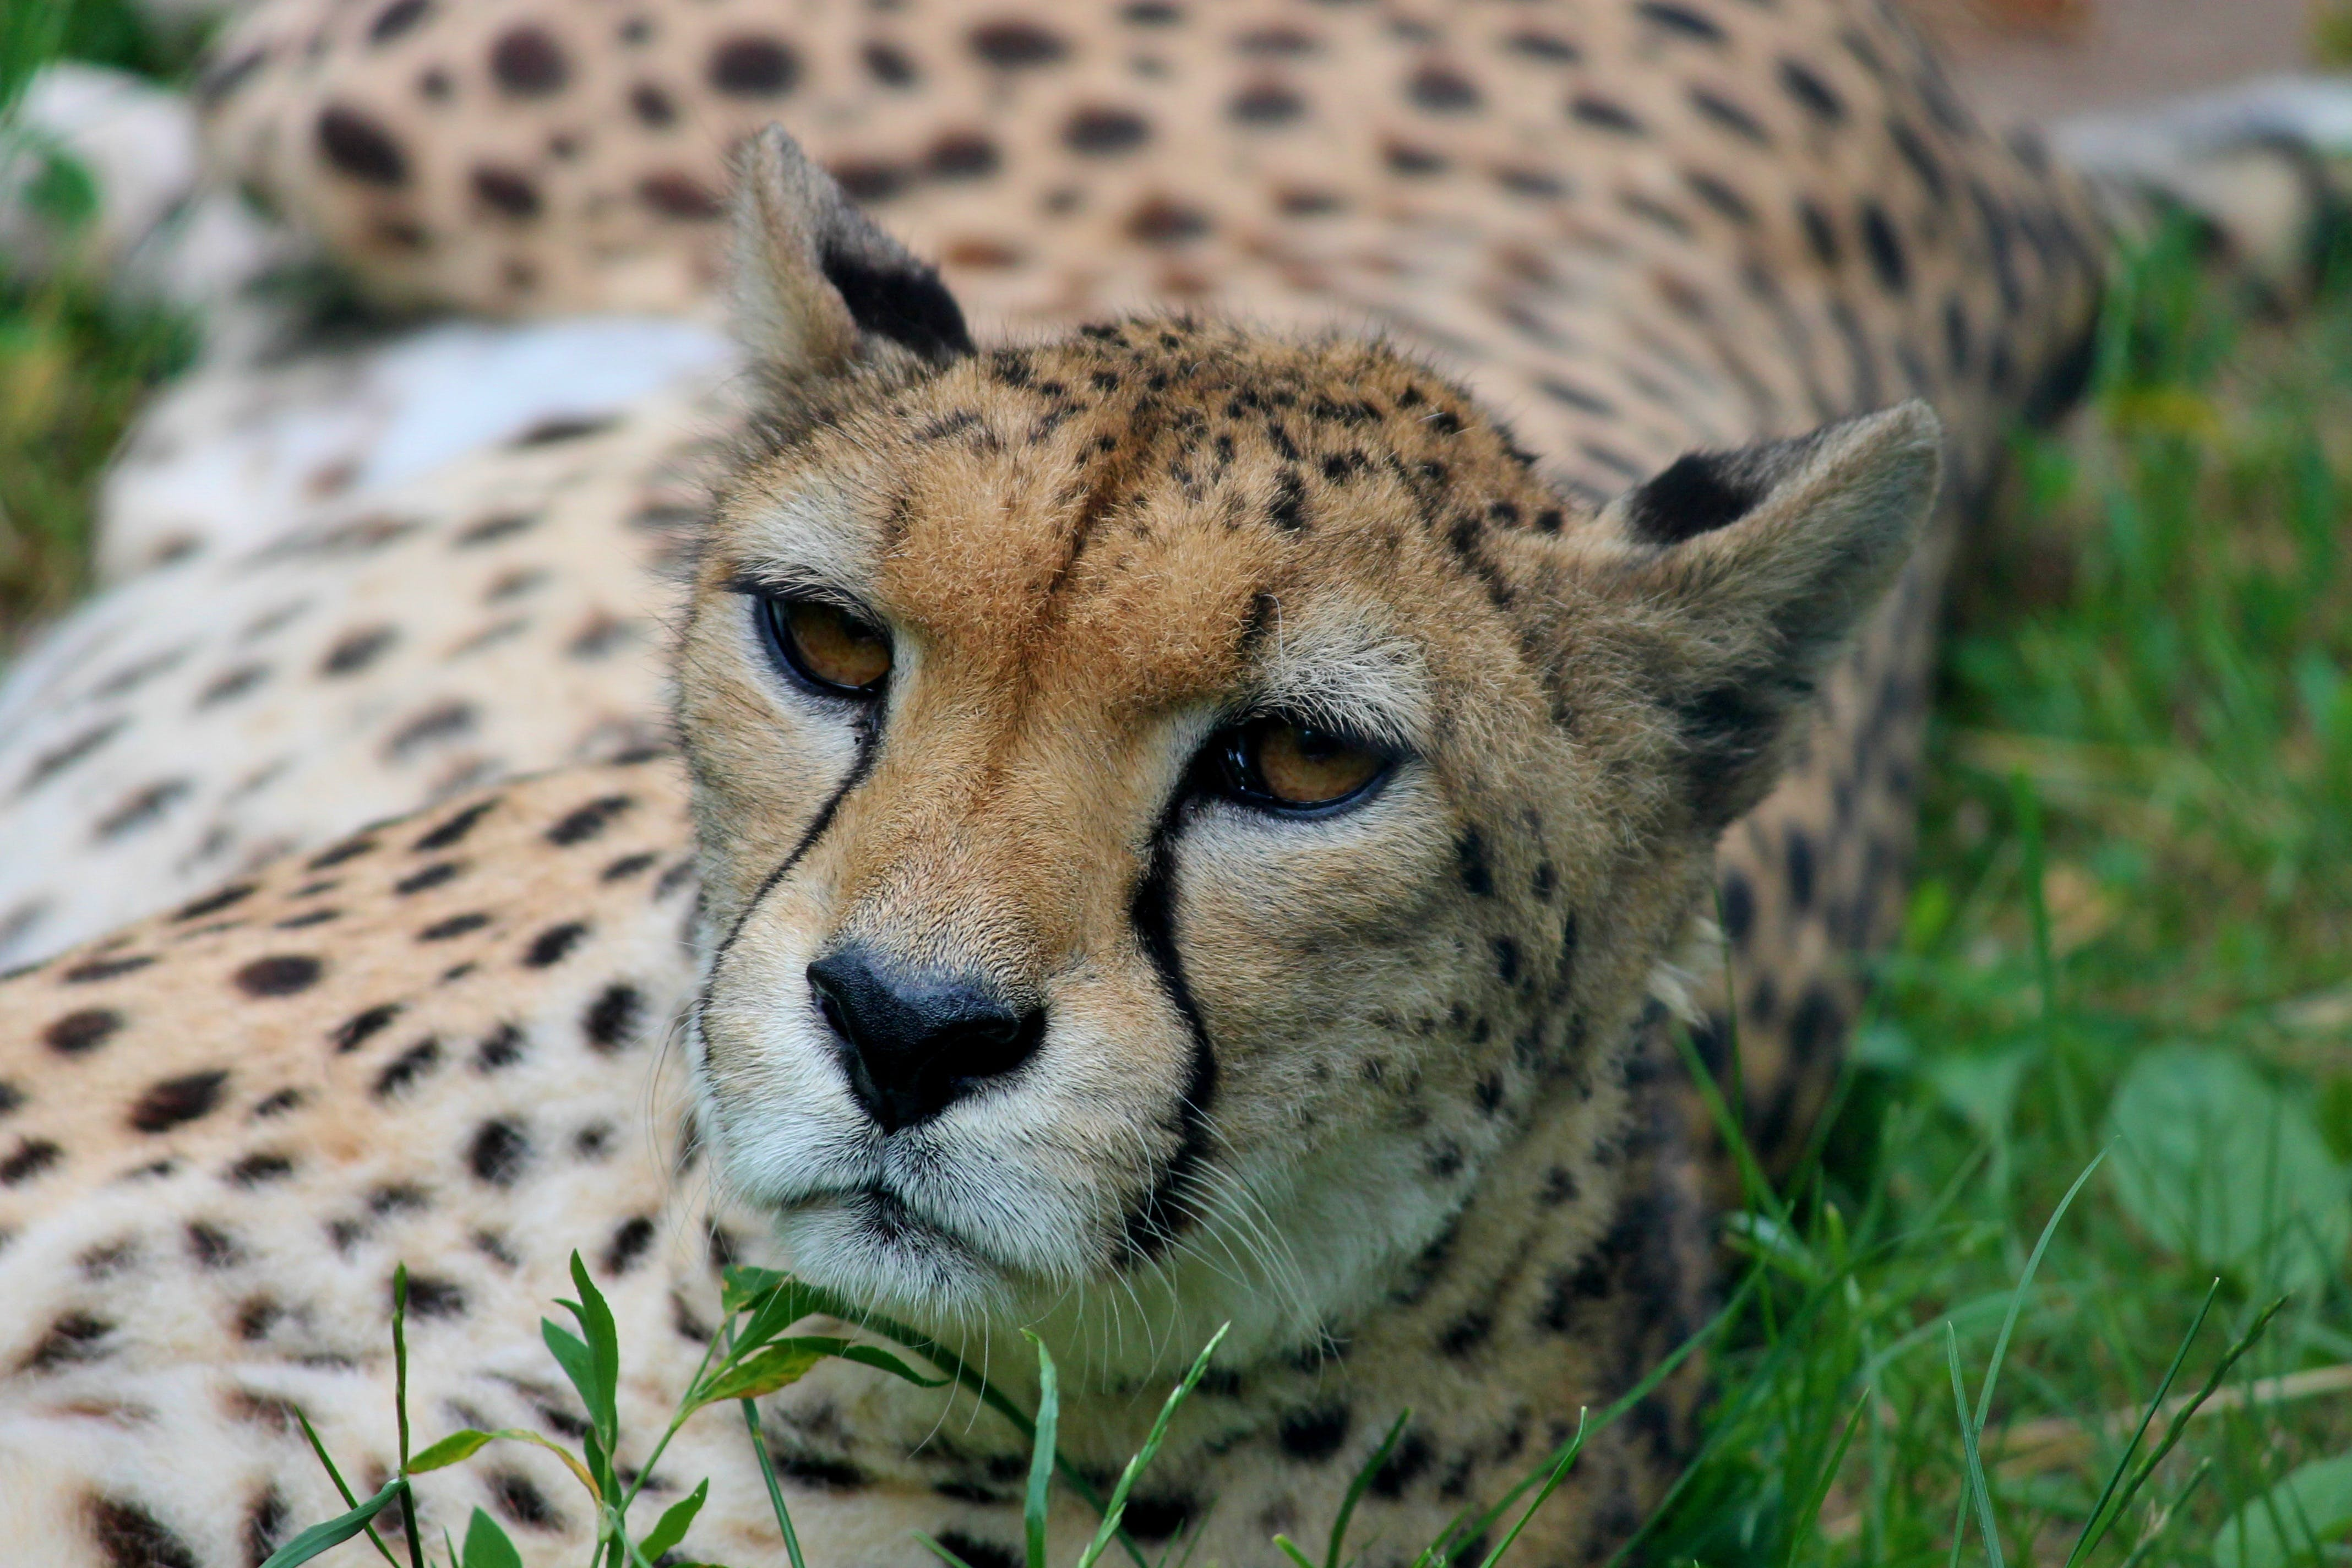 Cheetah in Green Grass Field